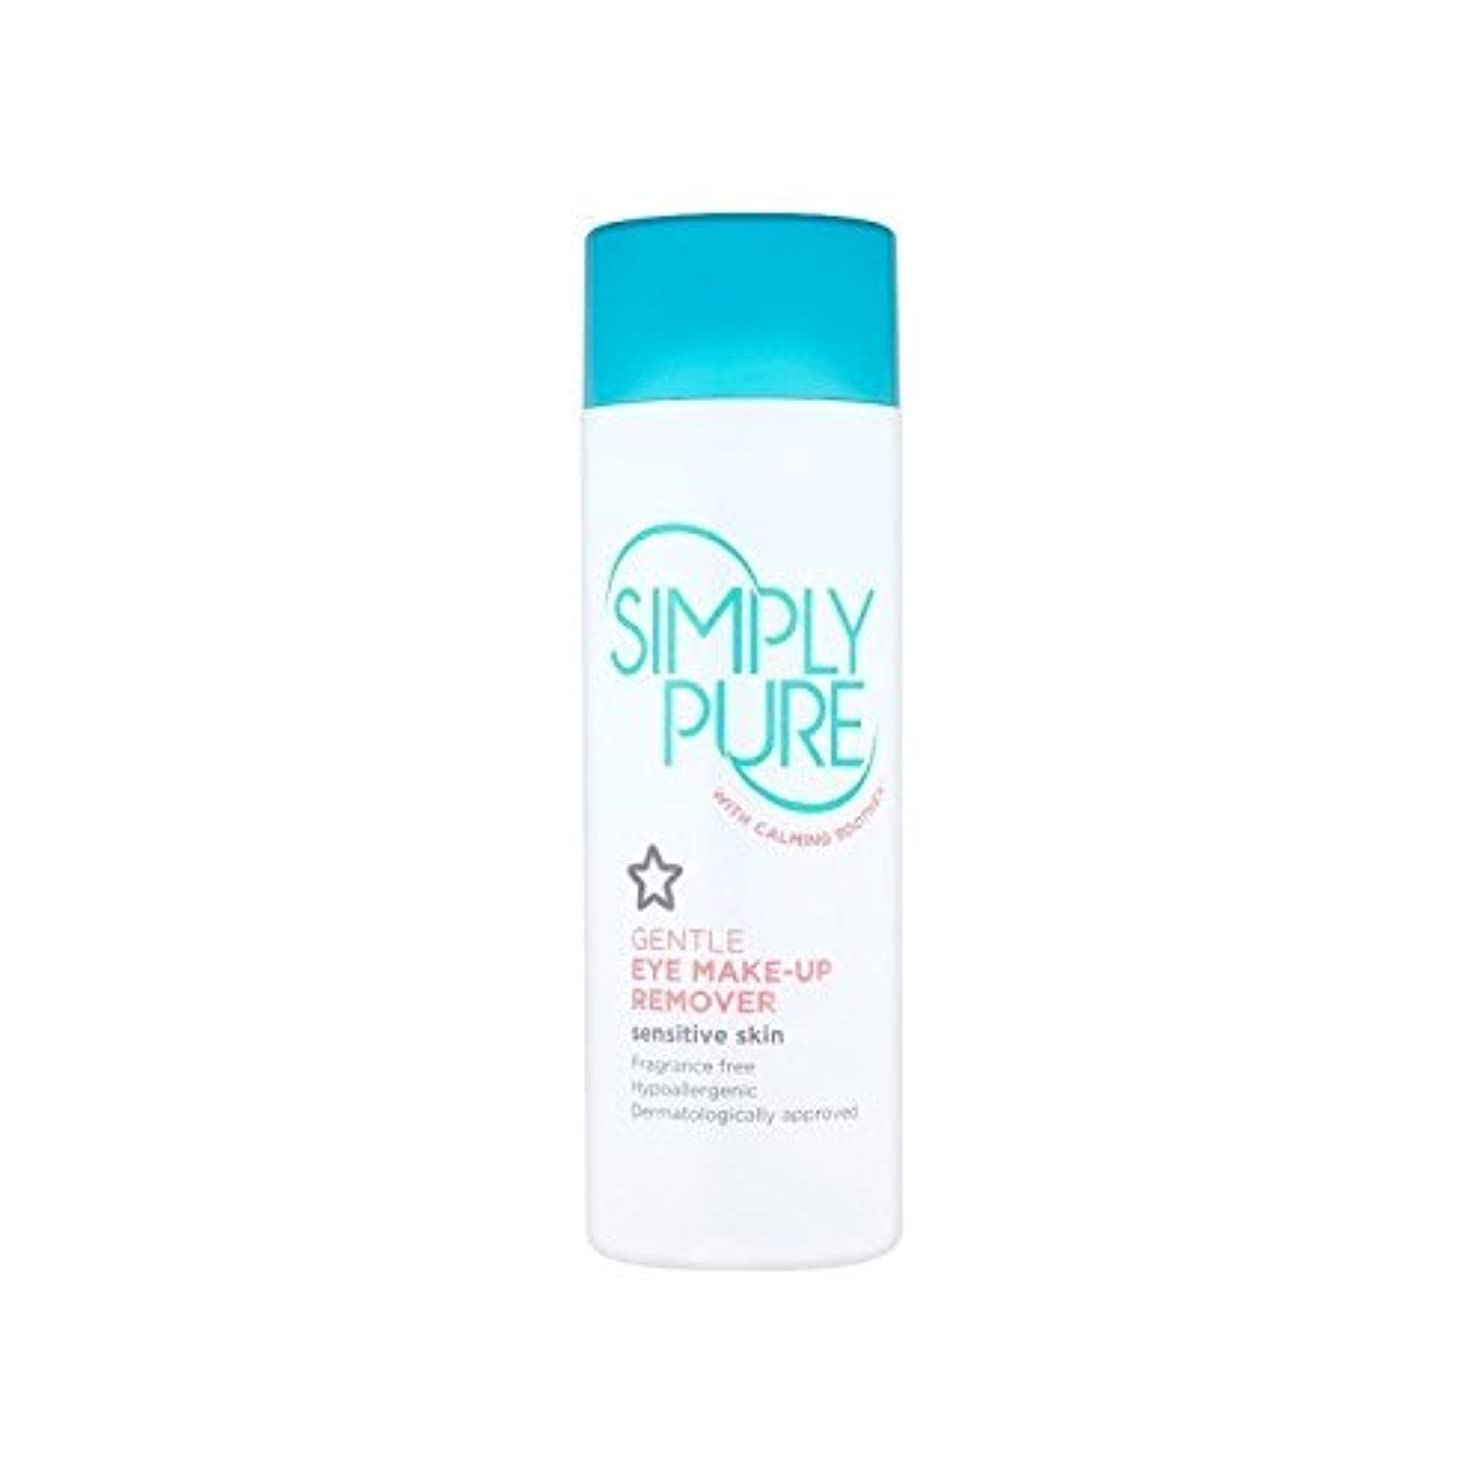 Simply Pure Gentle Eye Make-Up Remover 150ml (Pack of 6) - 単に純粋な優しい目メイクアップリムーバー150ミリリットル x6 [並行輸入品]